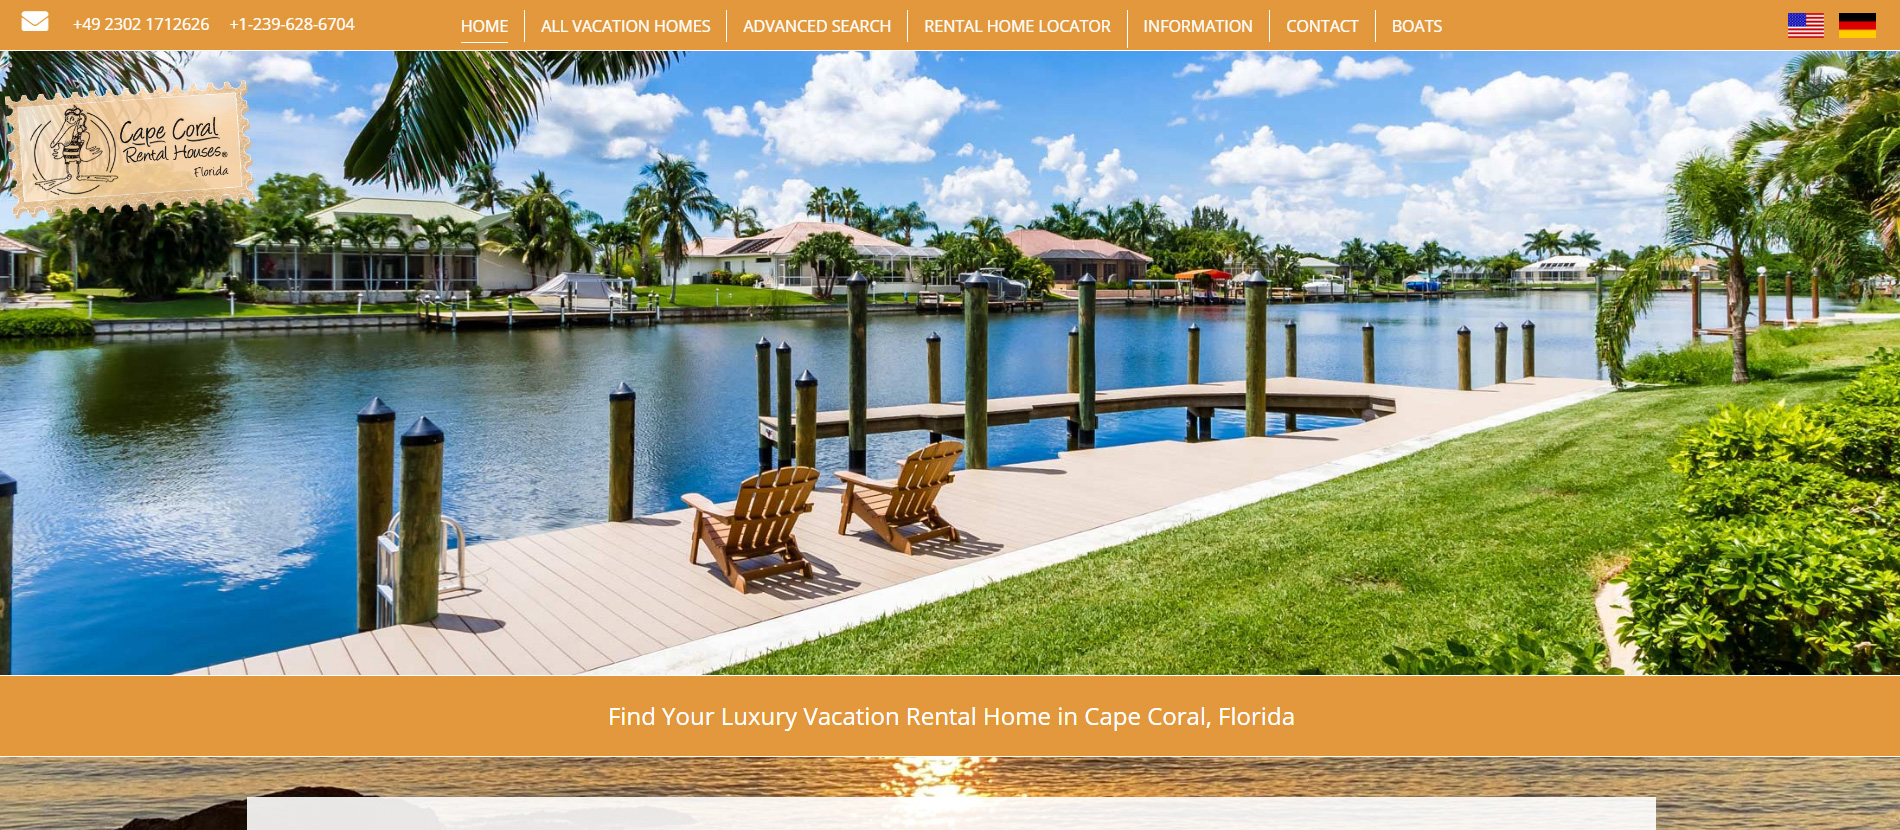 Cape Coral Rental Houses